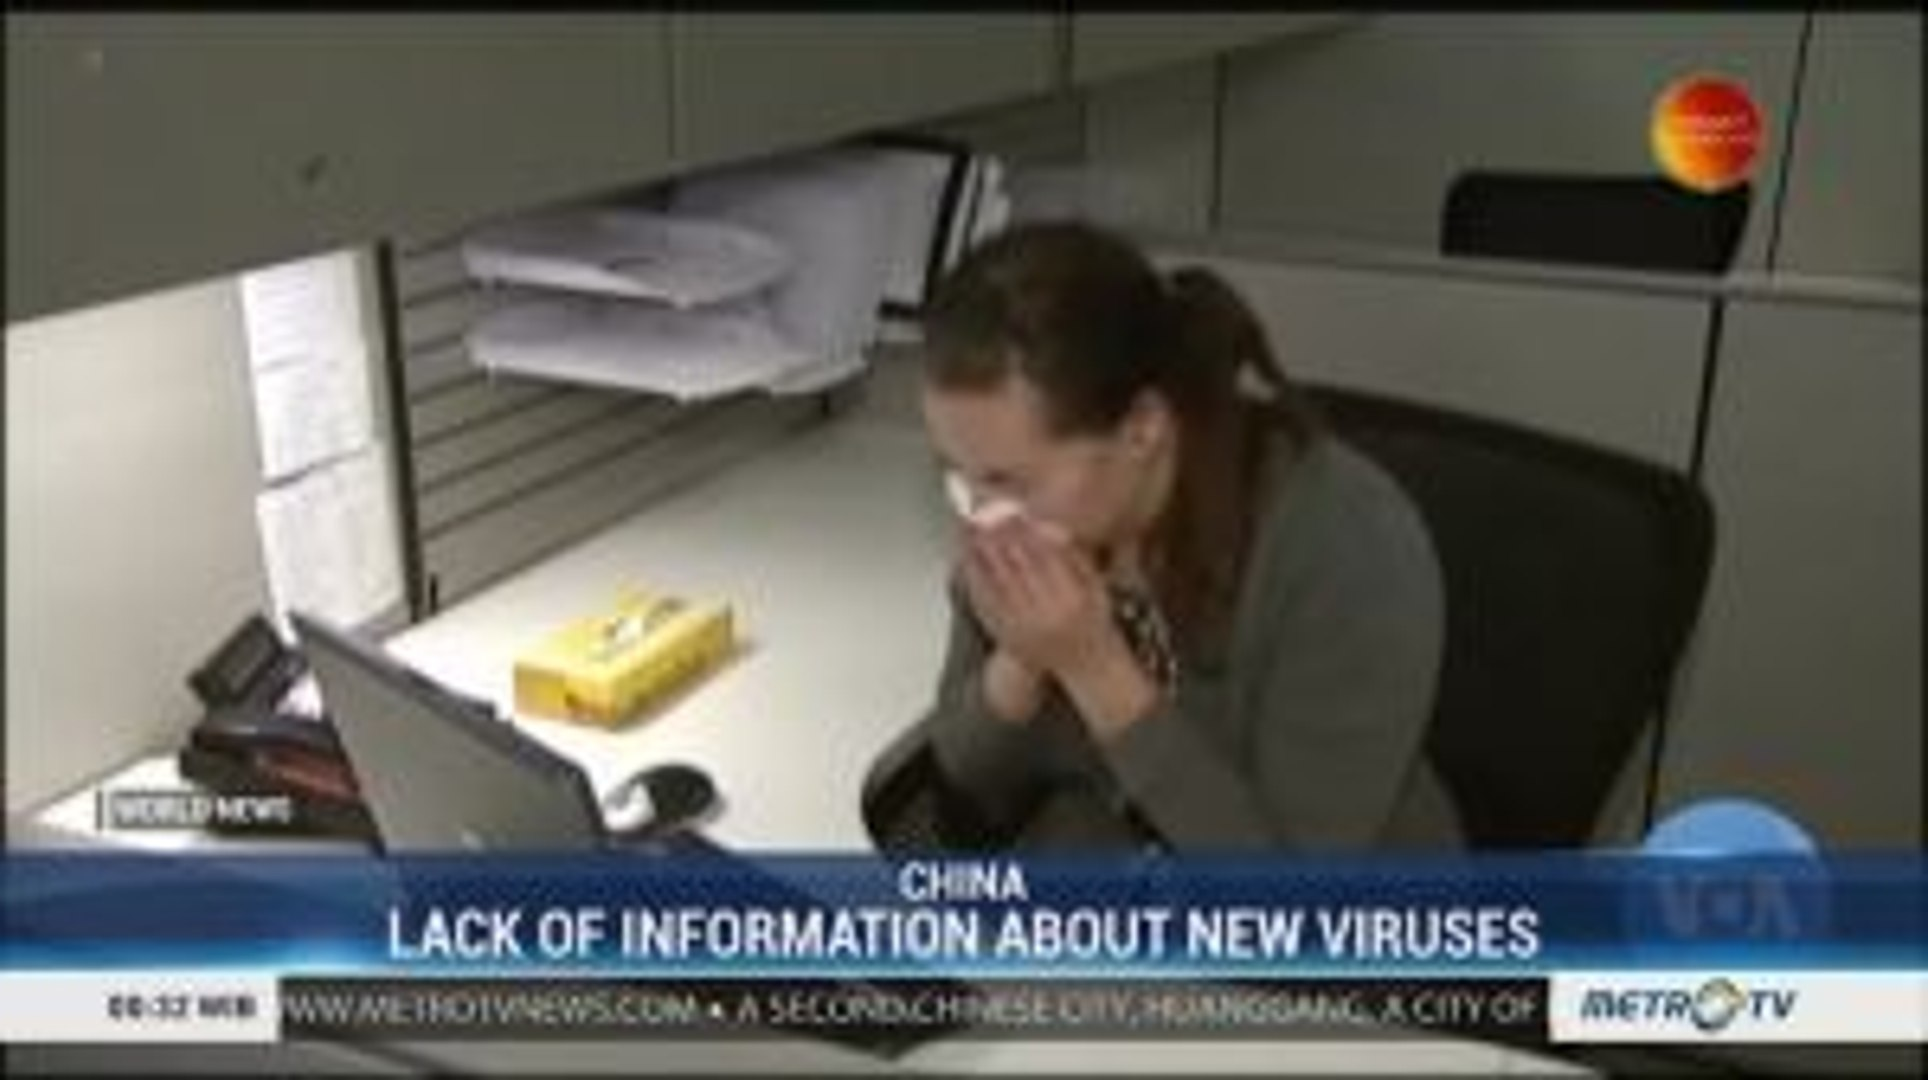 Lack of Information About New Viruses in China